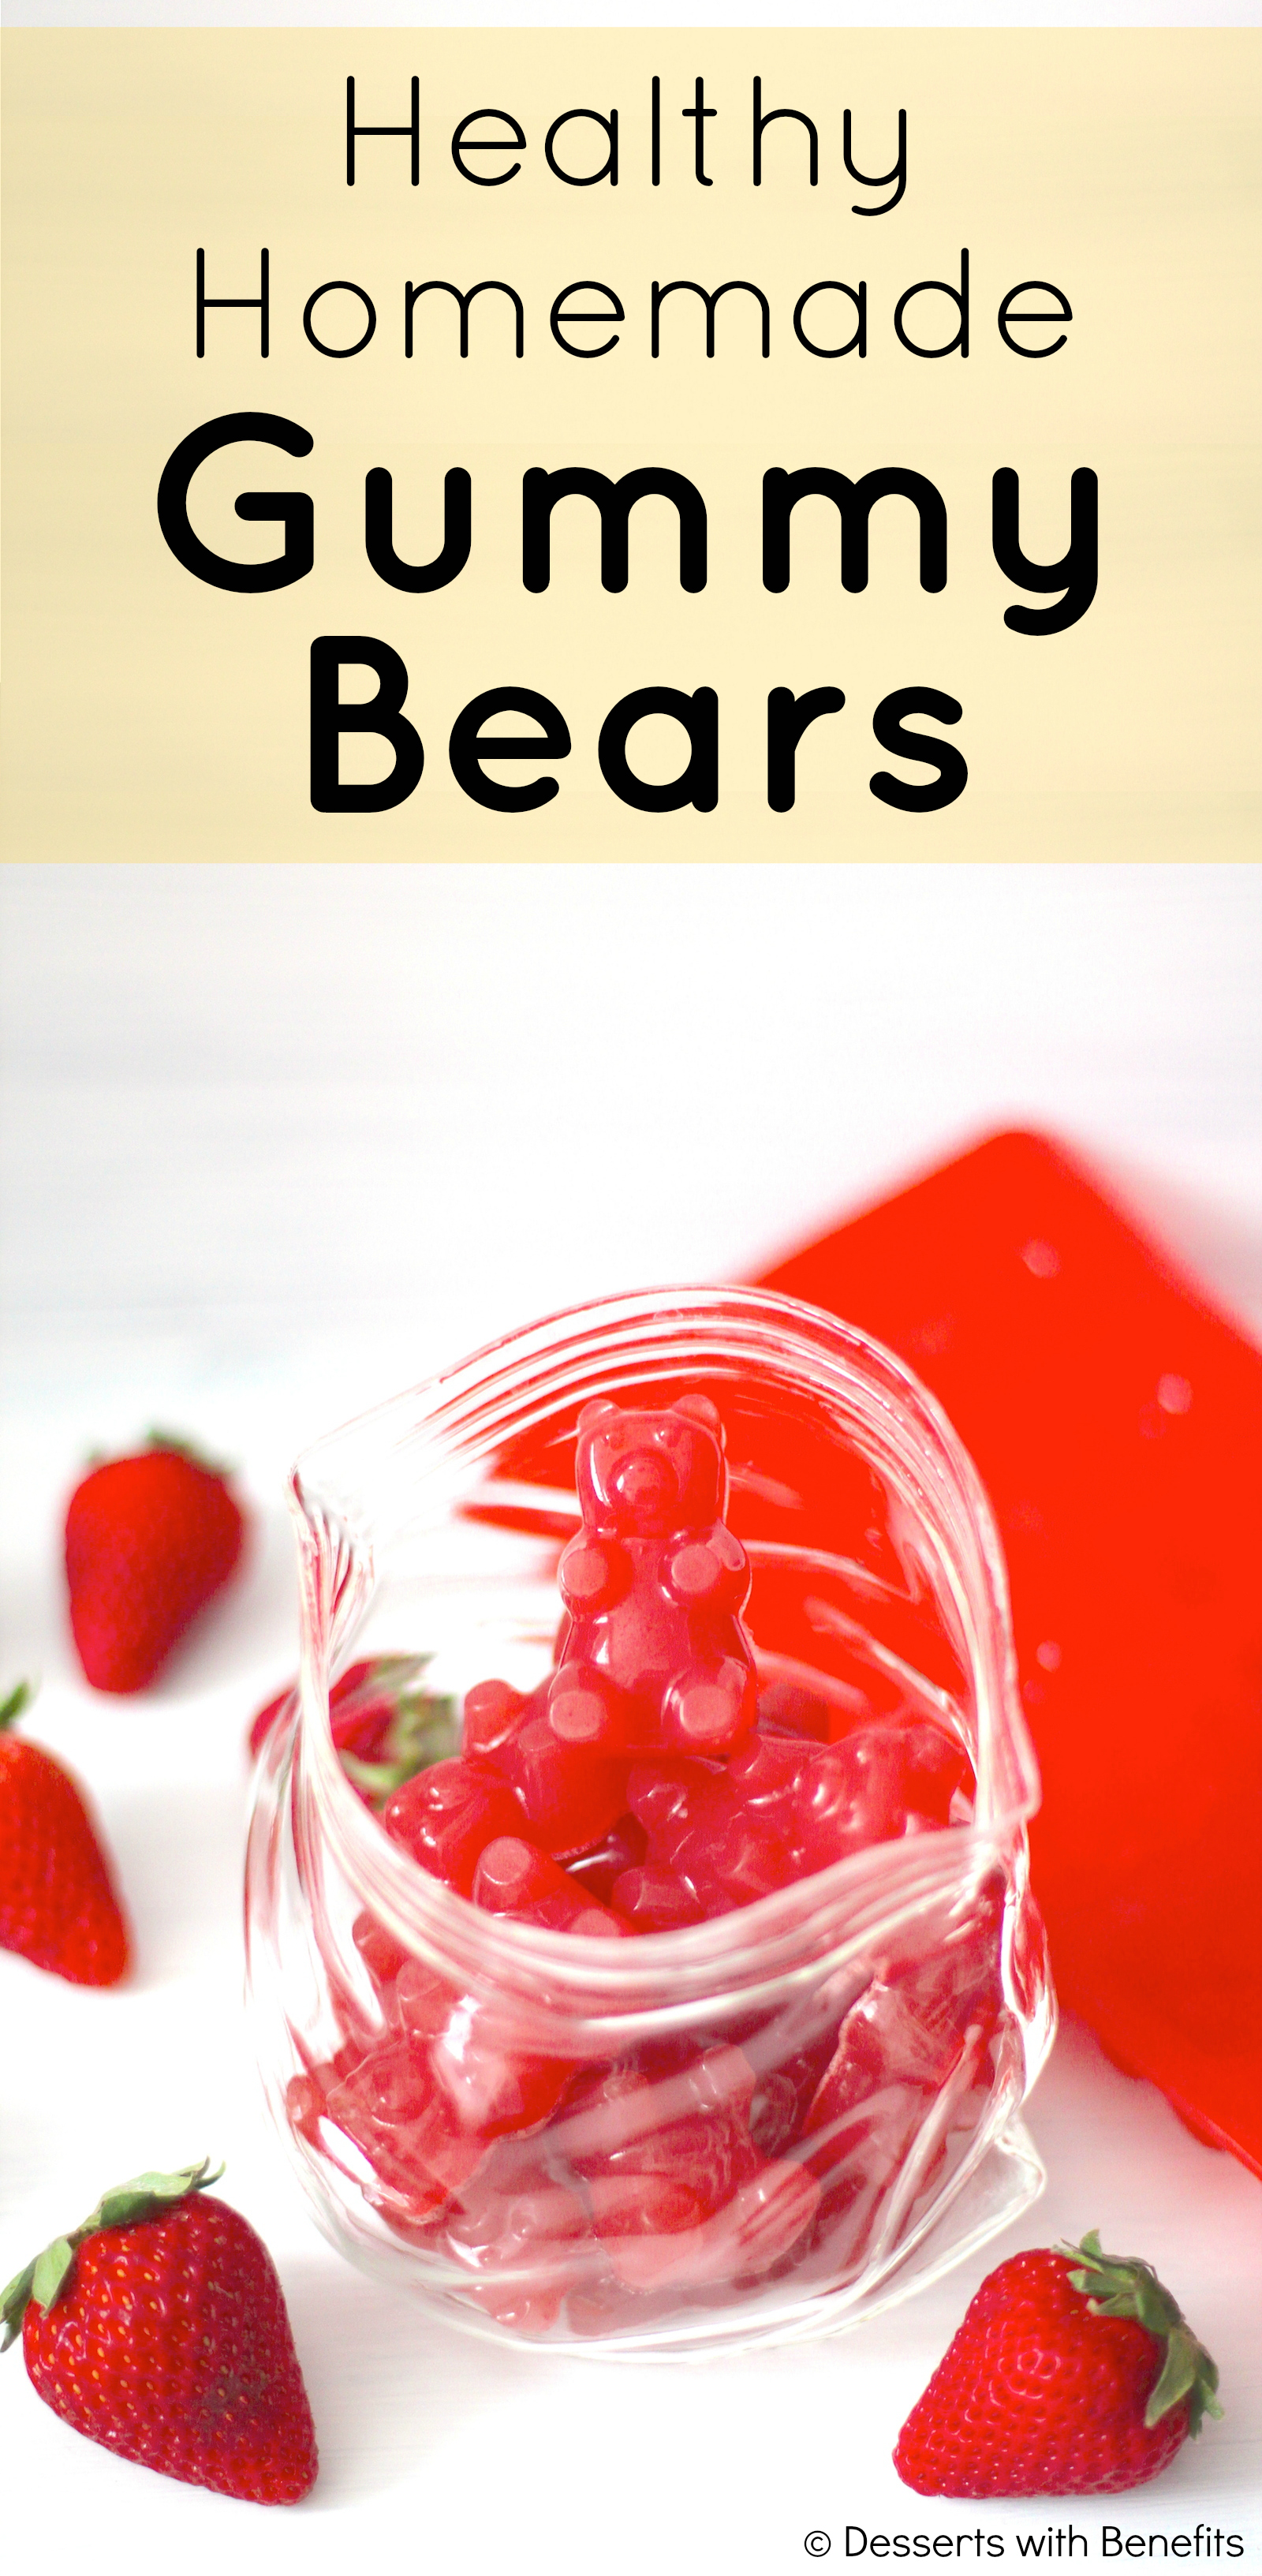 Healthy Homemade Strawberry Gummy Bears recipe (refined sugar free, fat free, low carb, gluten free) - Healthy Dessert Recipes at Desserts with Benefits